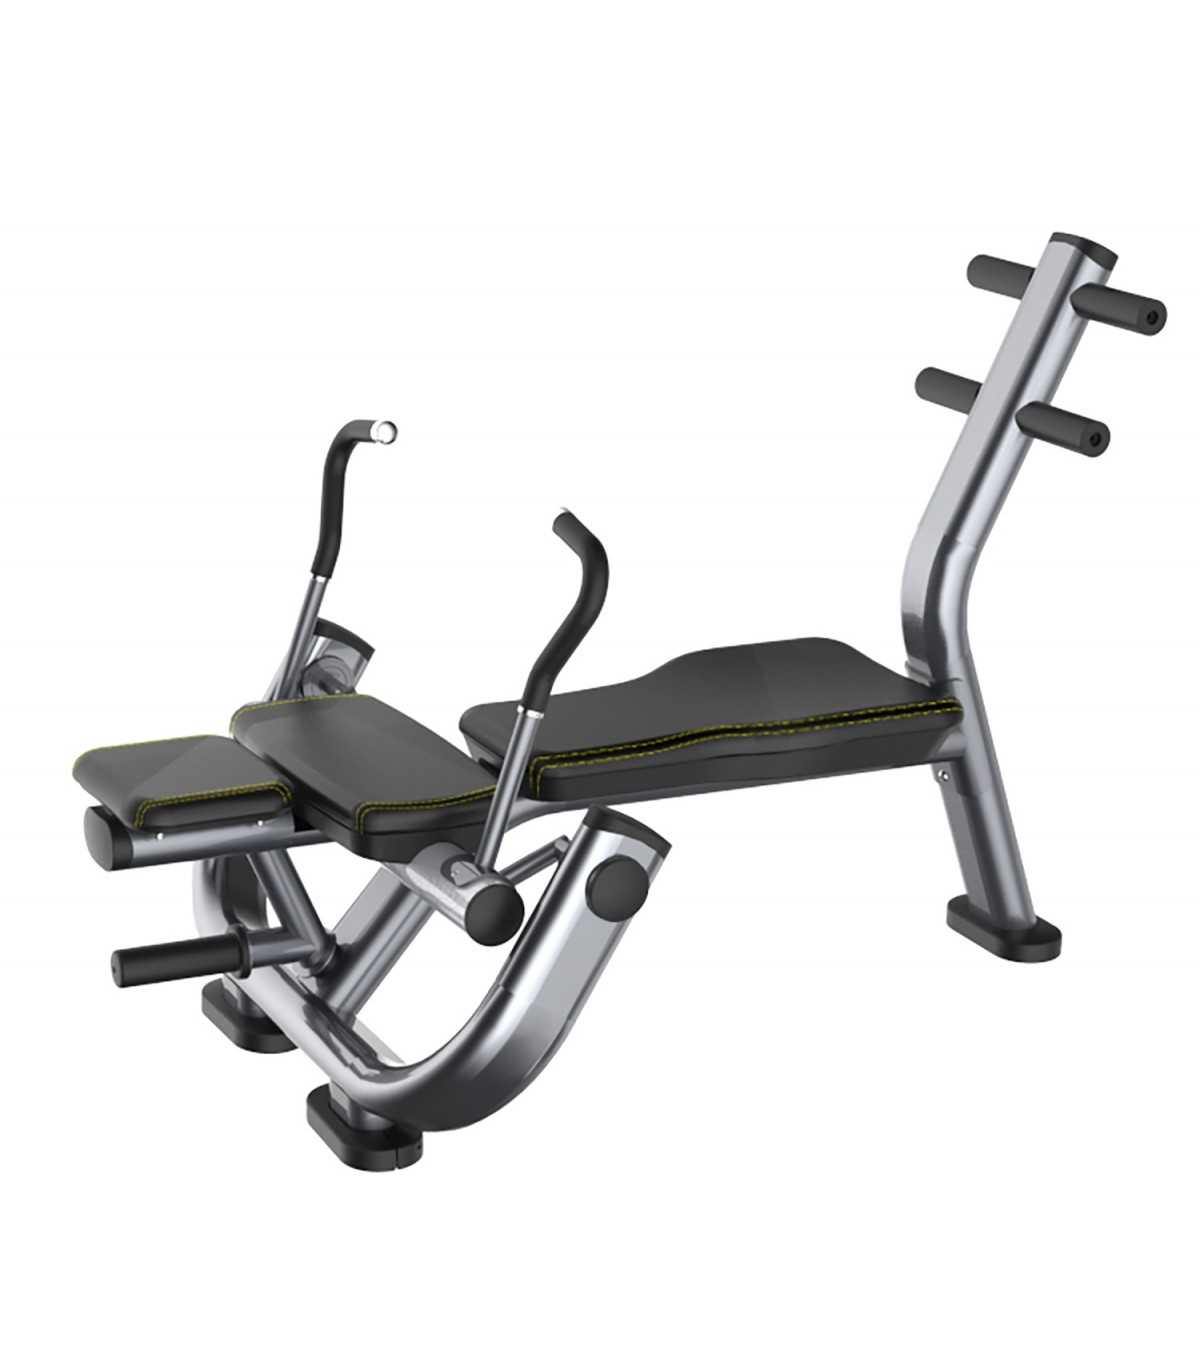 Banc de musculation professionnel abdominaux crunch care fitness - Banc musculation professionnel ...